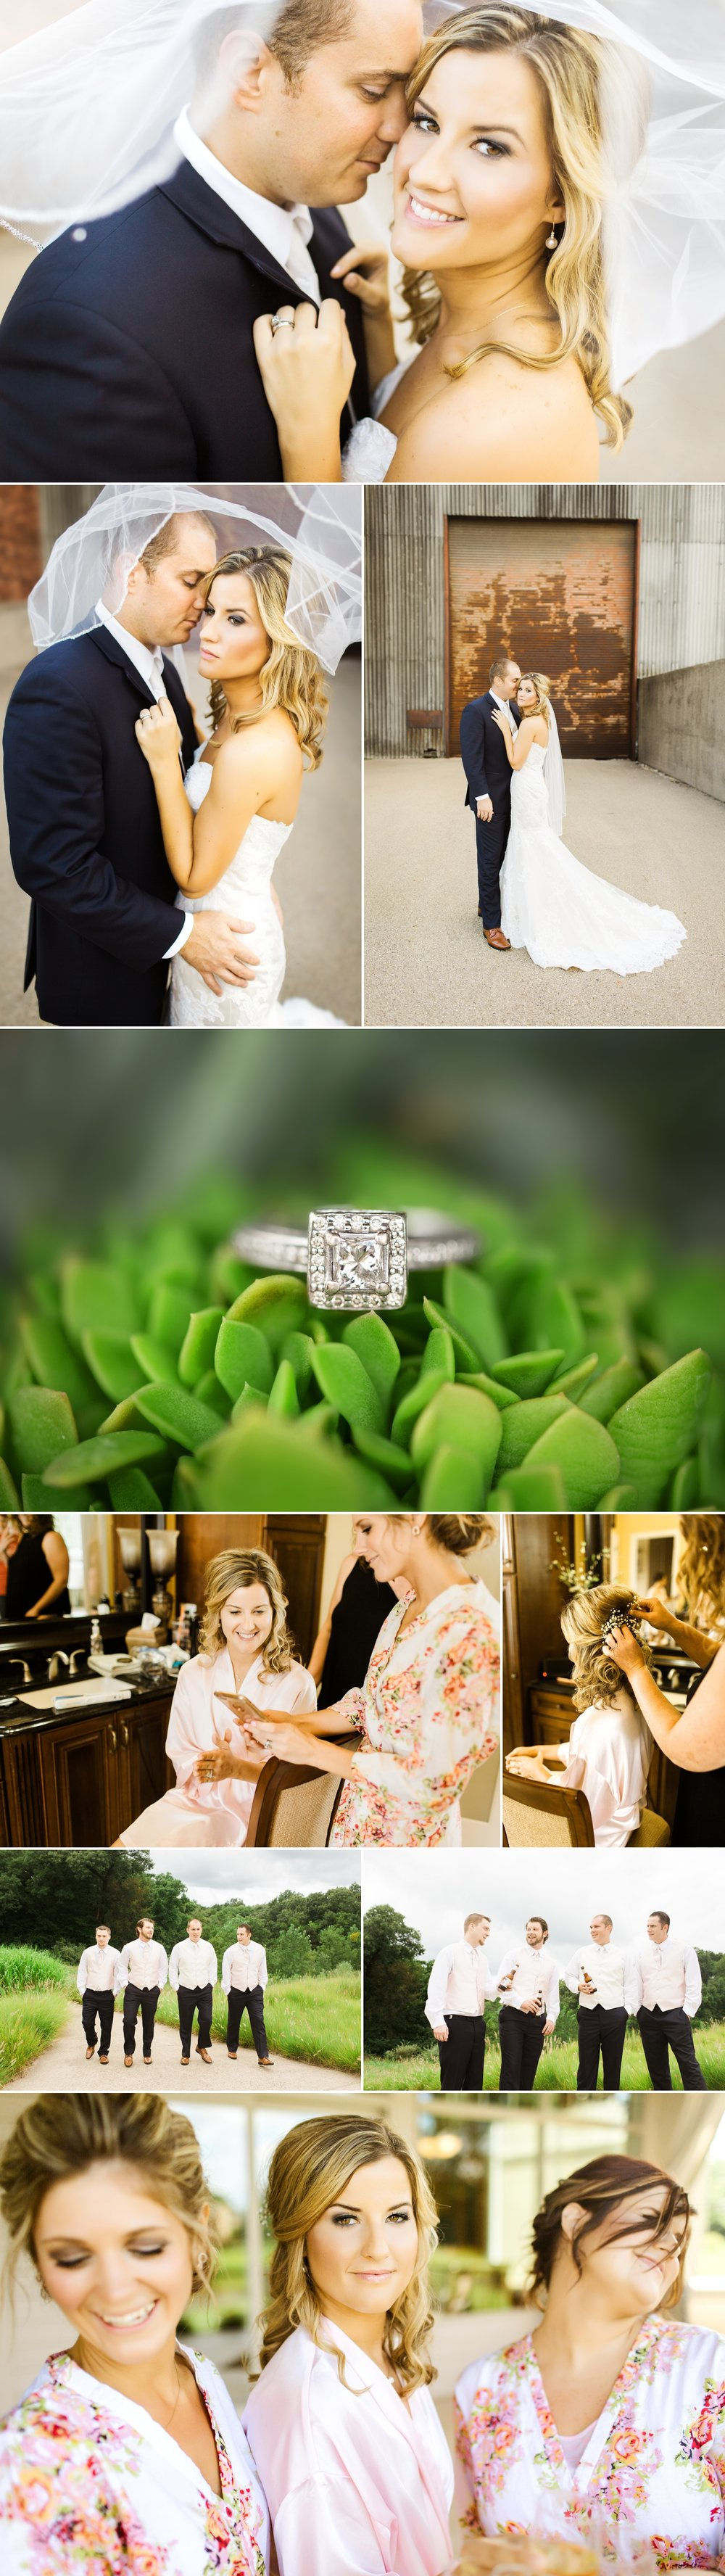 Mr. and Mrs. Flower Collage 1.jpg